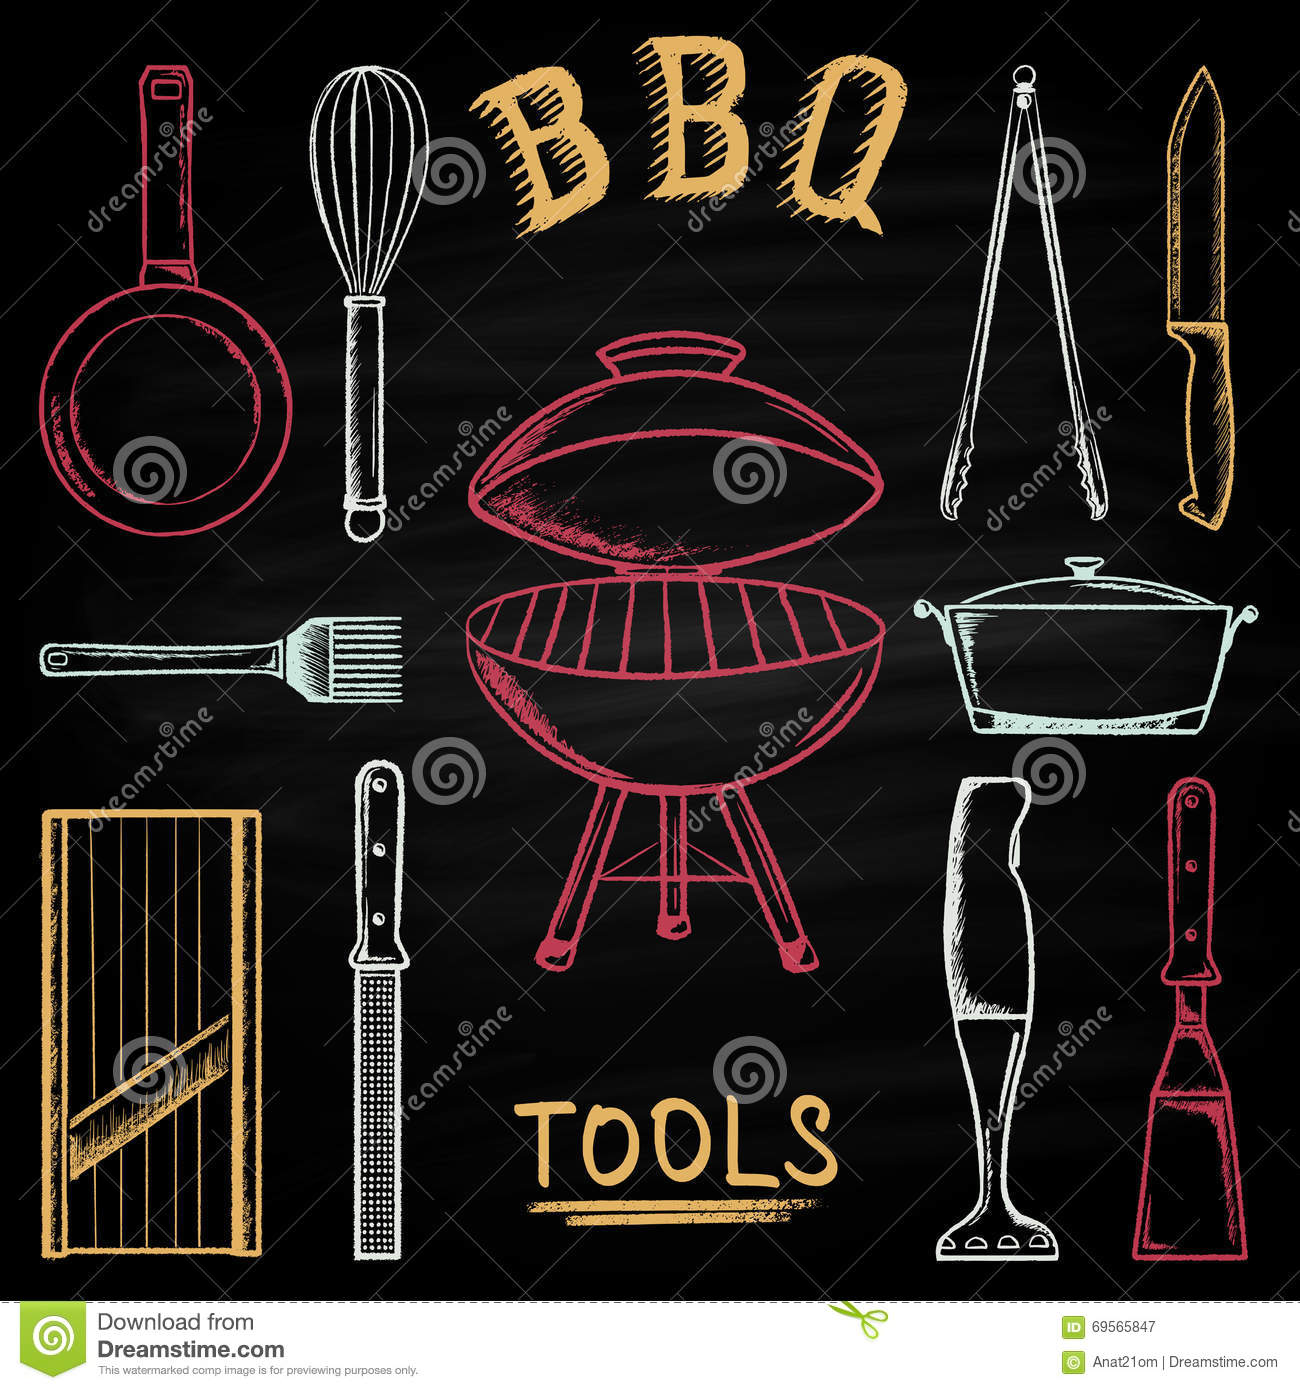 Set Of Barbecue Tools Drawn In Colored Chalk On A Blackboard